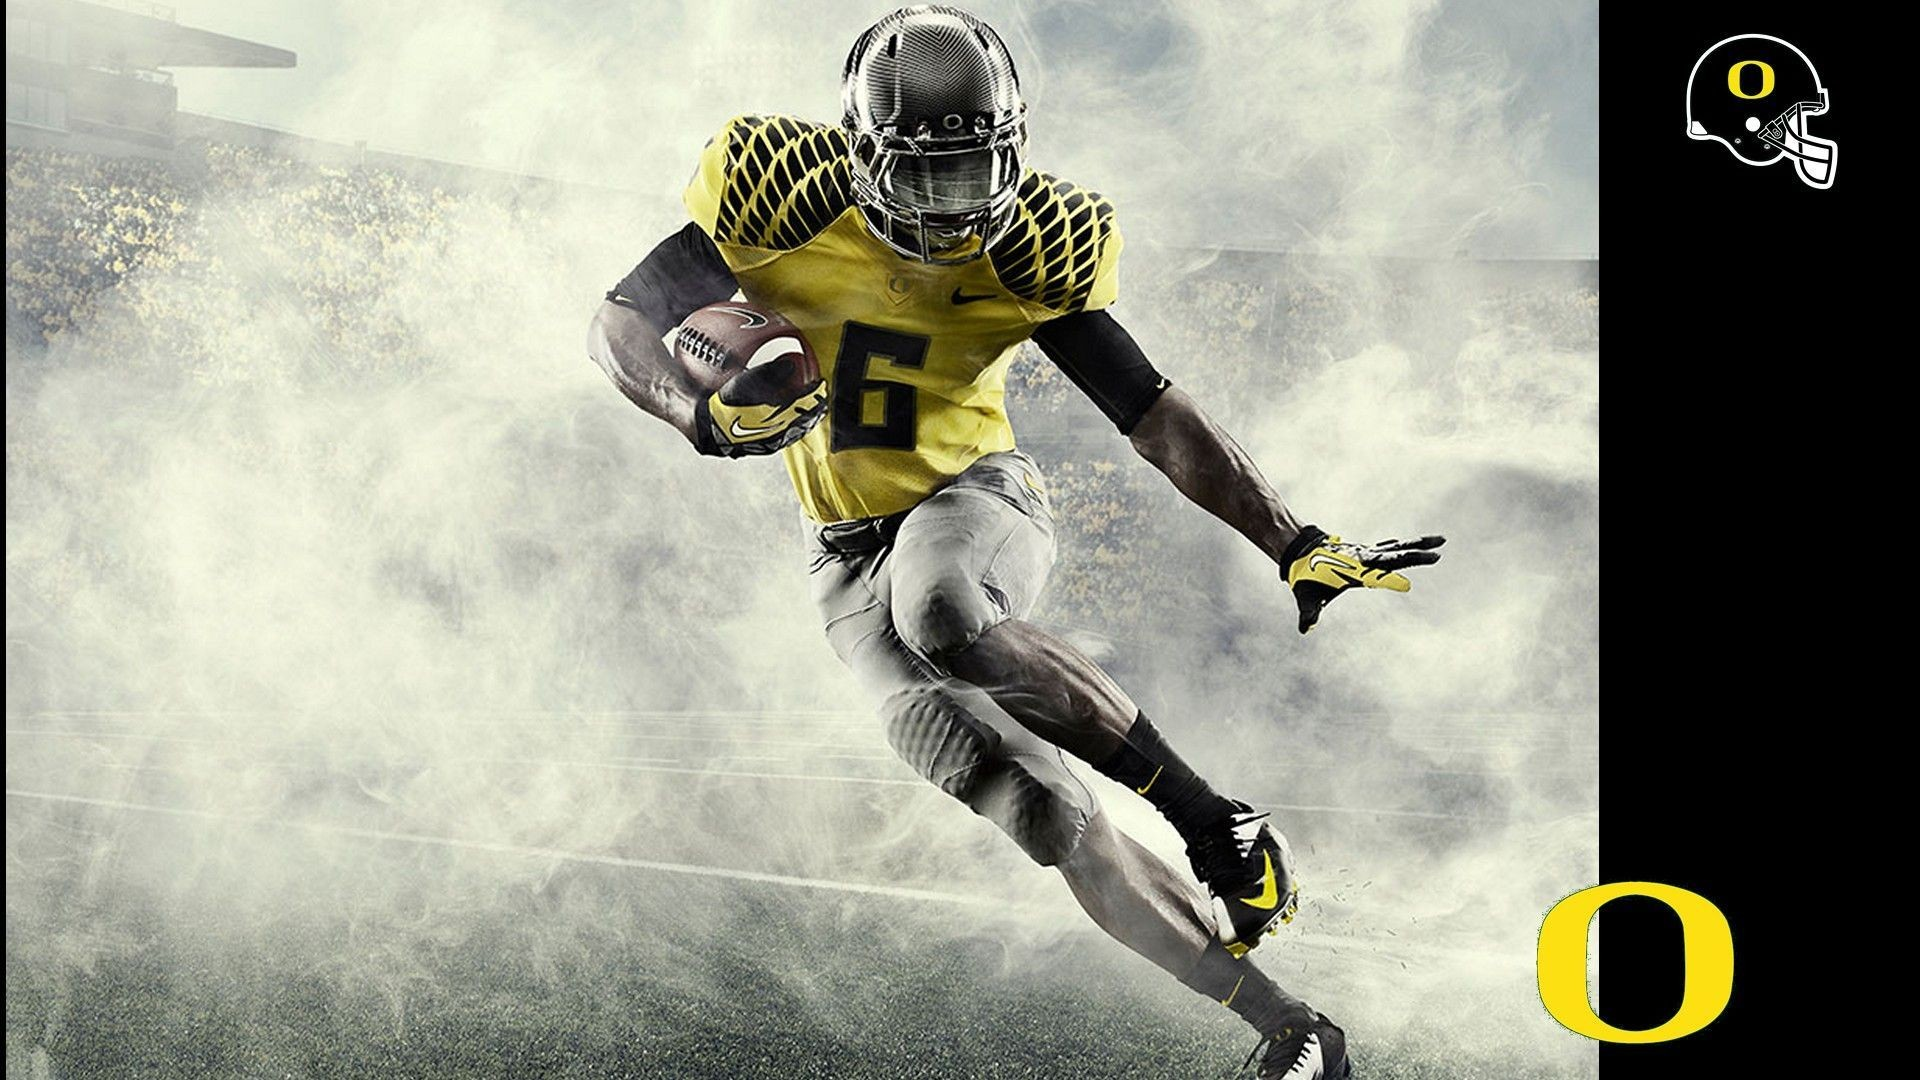 Collection of Football Wallpaper on HDWallpapers 1600×900 Football  Wallpapers (45 Wallpapers) | · Nike WallpaperCool …